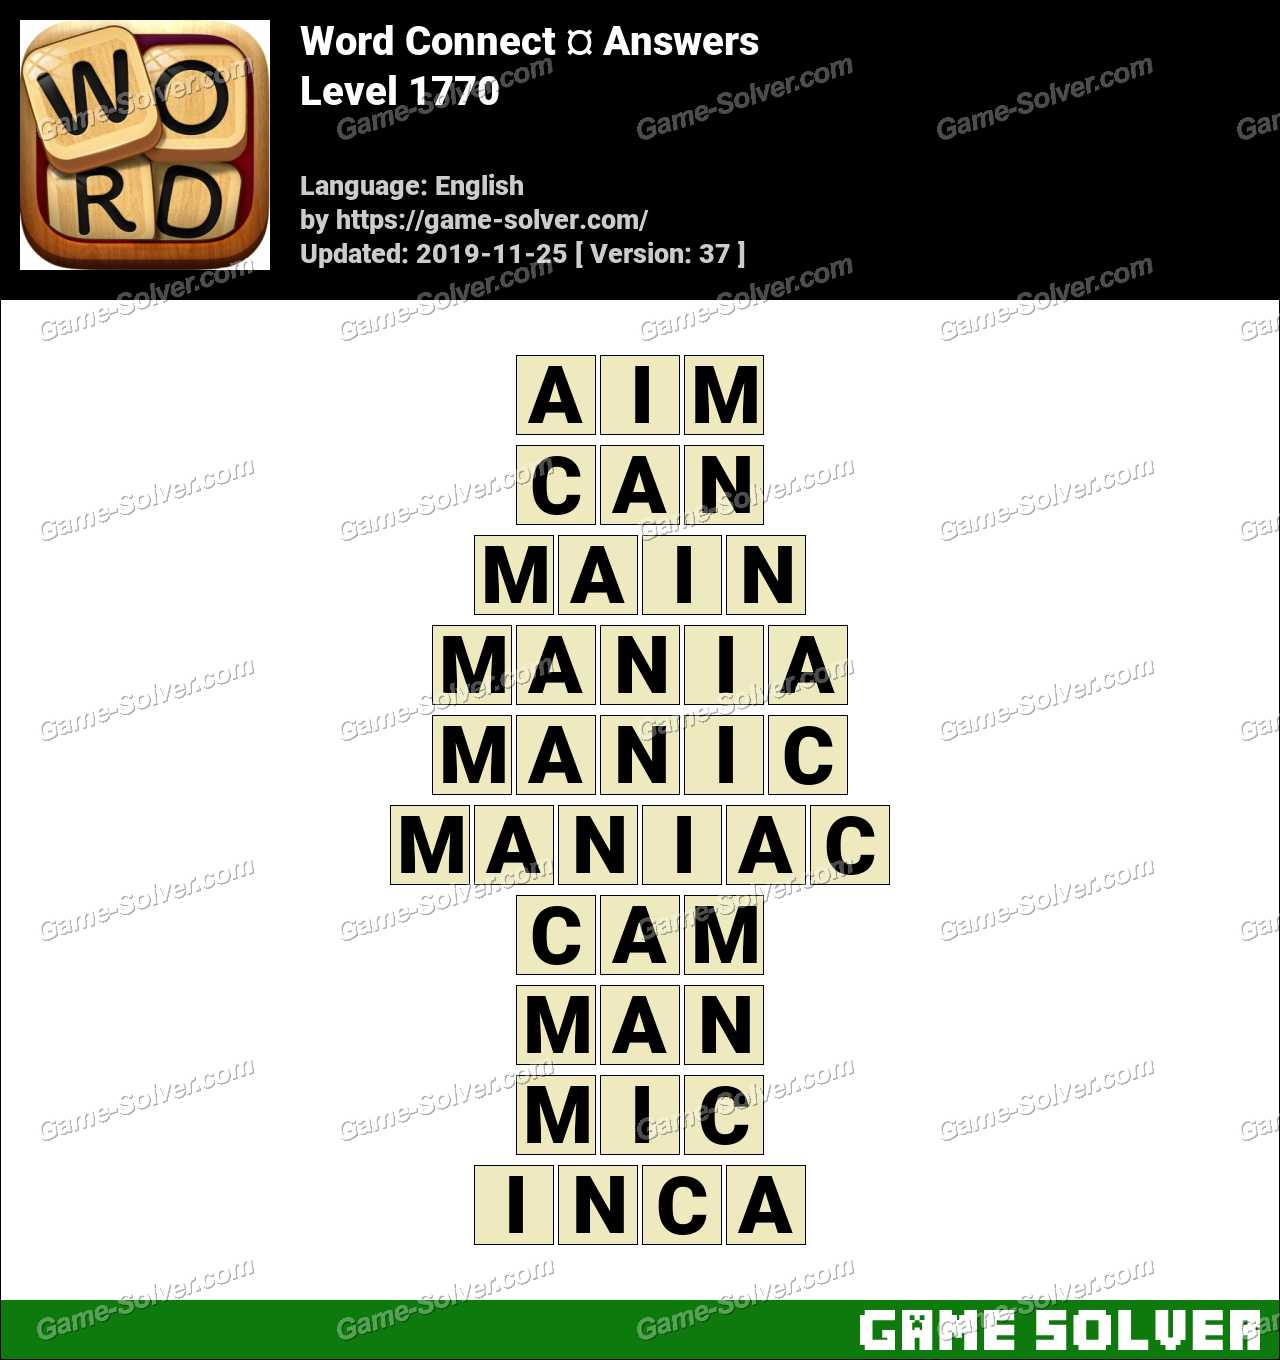 Word Connect Level 1770 Answers